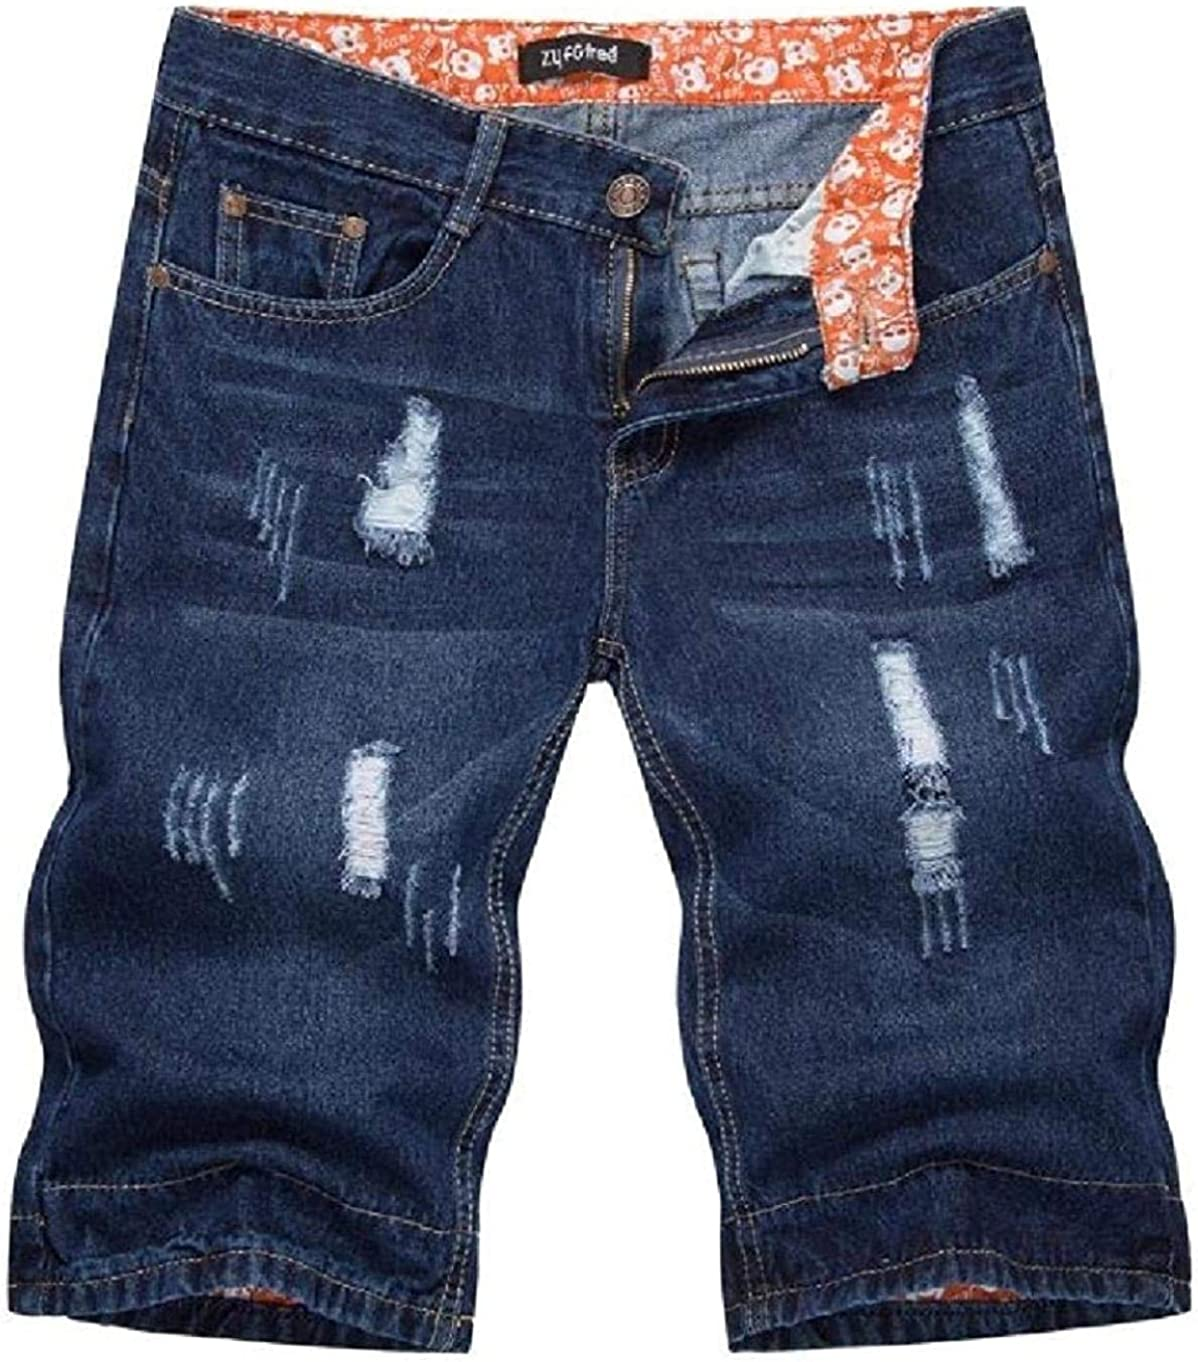 JNBGYAPS Men Ripped Straight Stretchy Slim Fit Casual Hole Denim Shorts